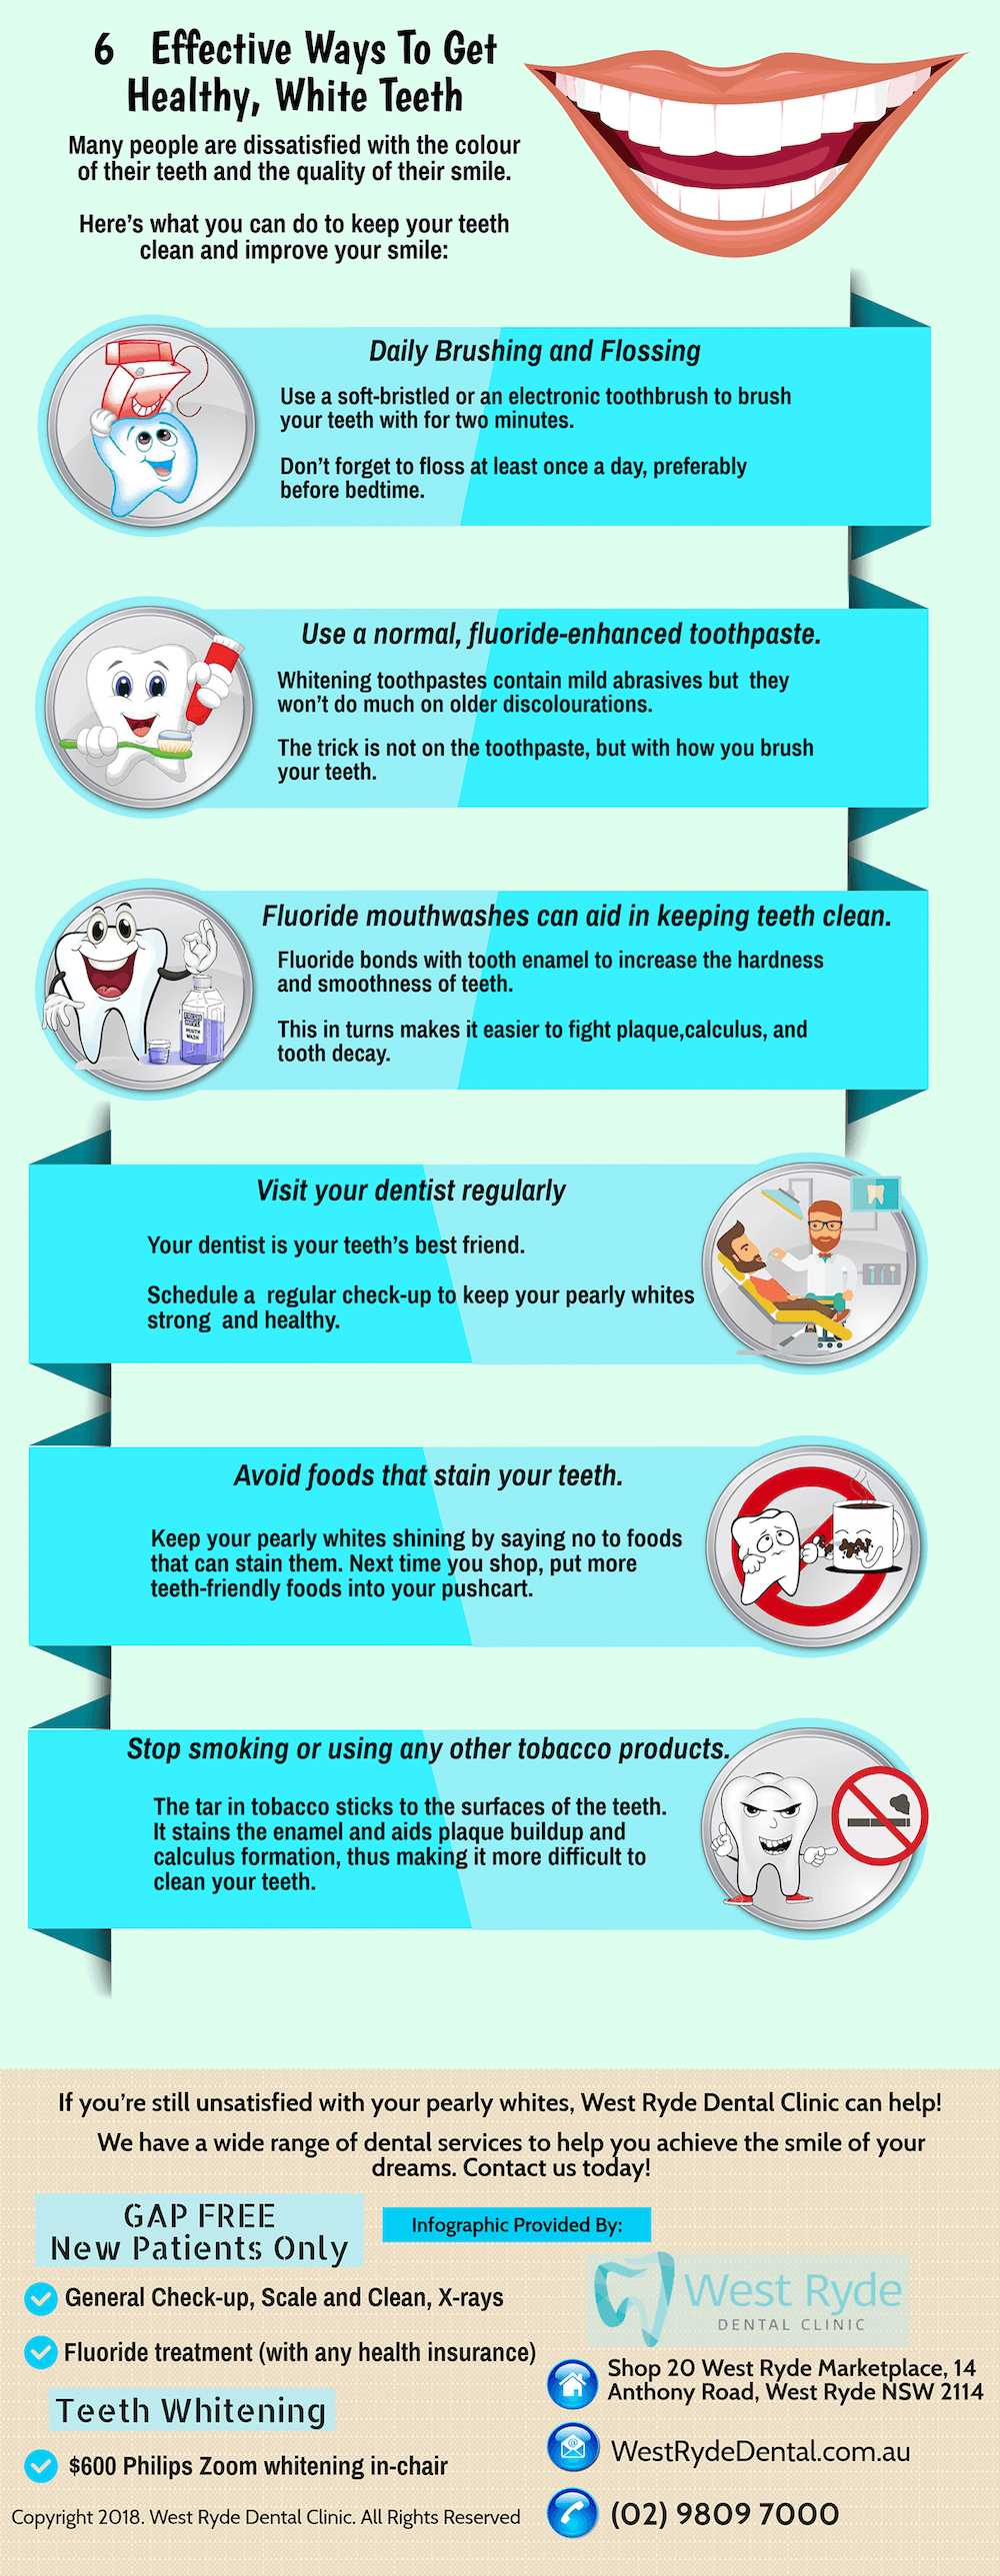 6 Tips To Keep For Healthy White Teeth In West Ryde